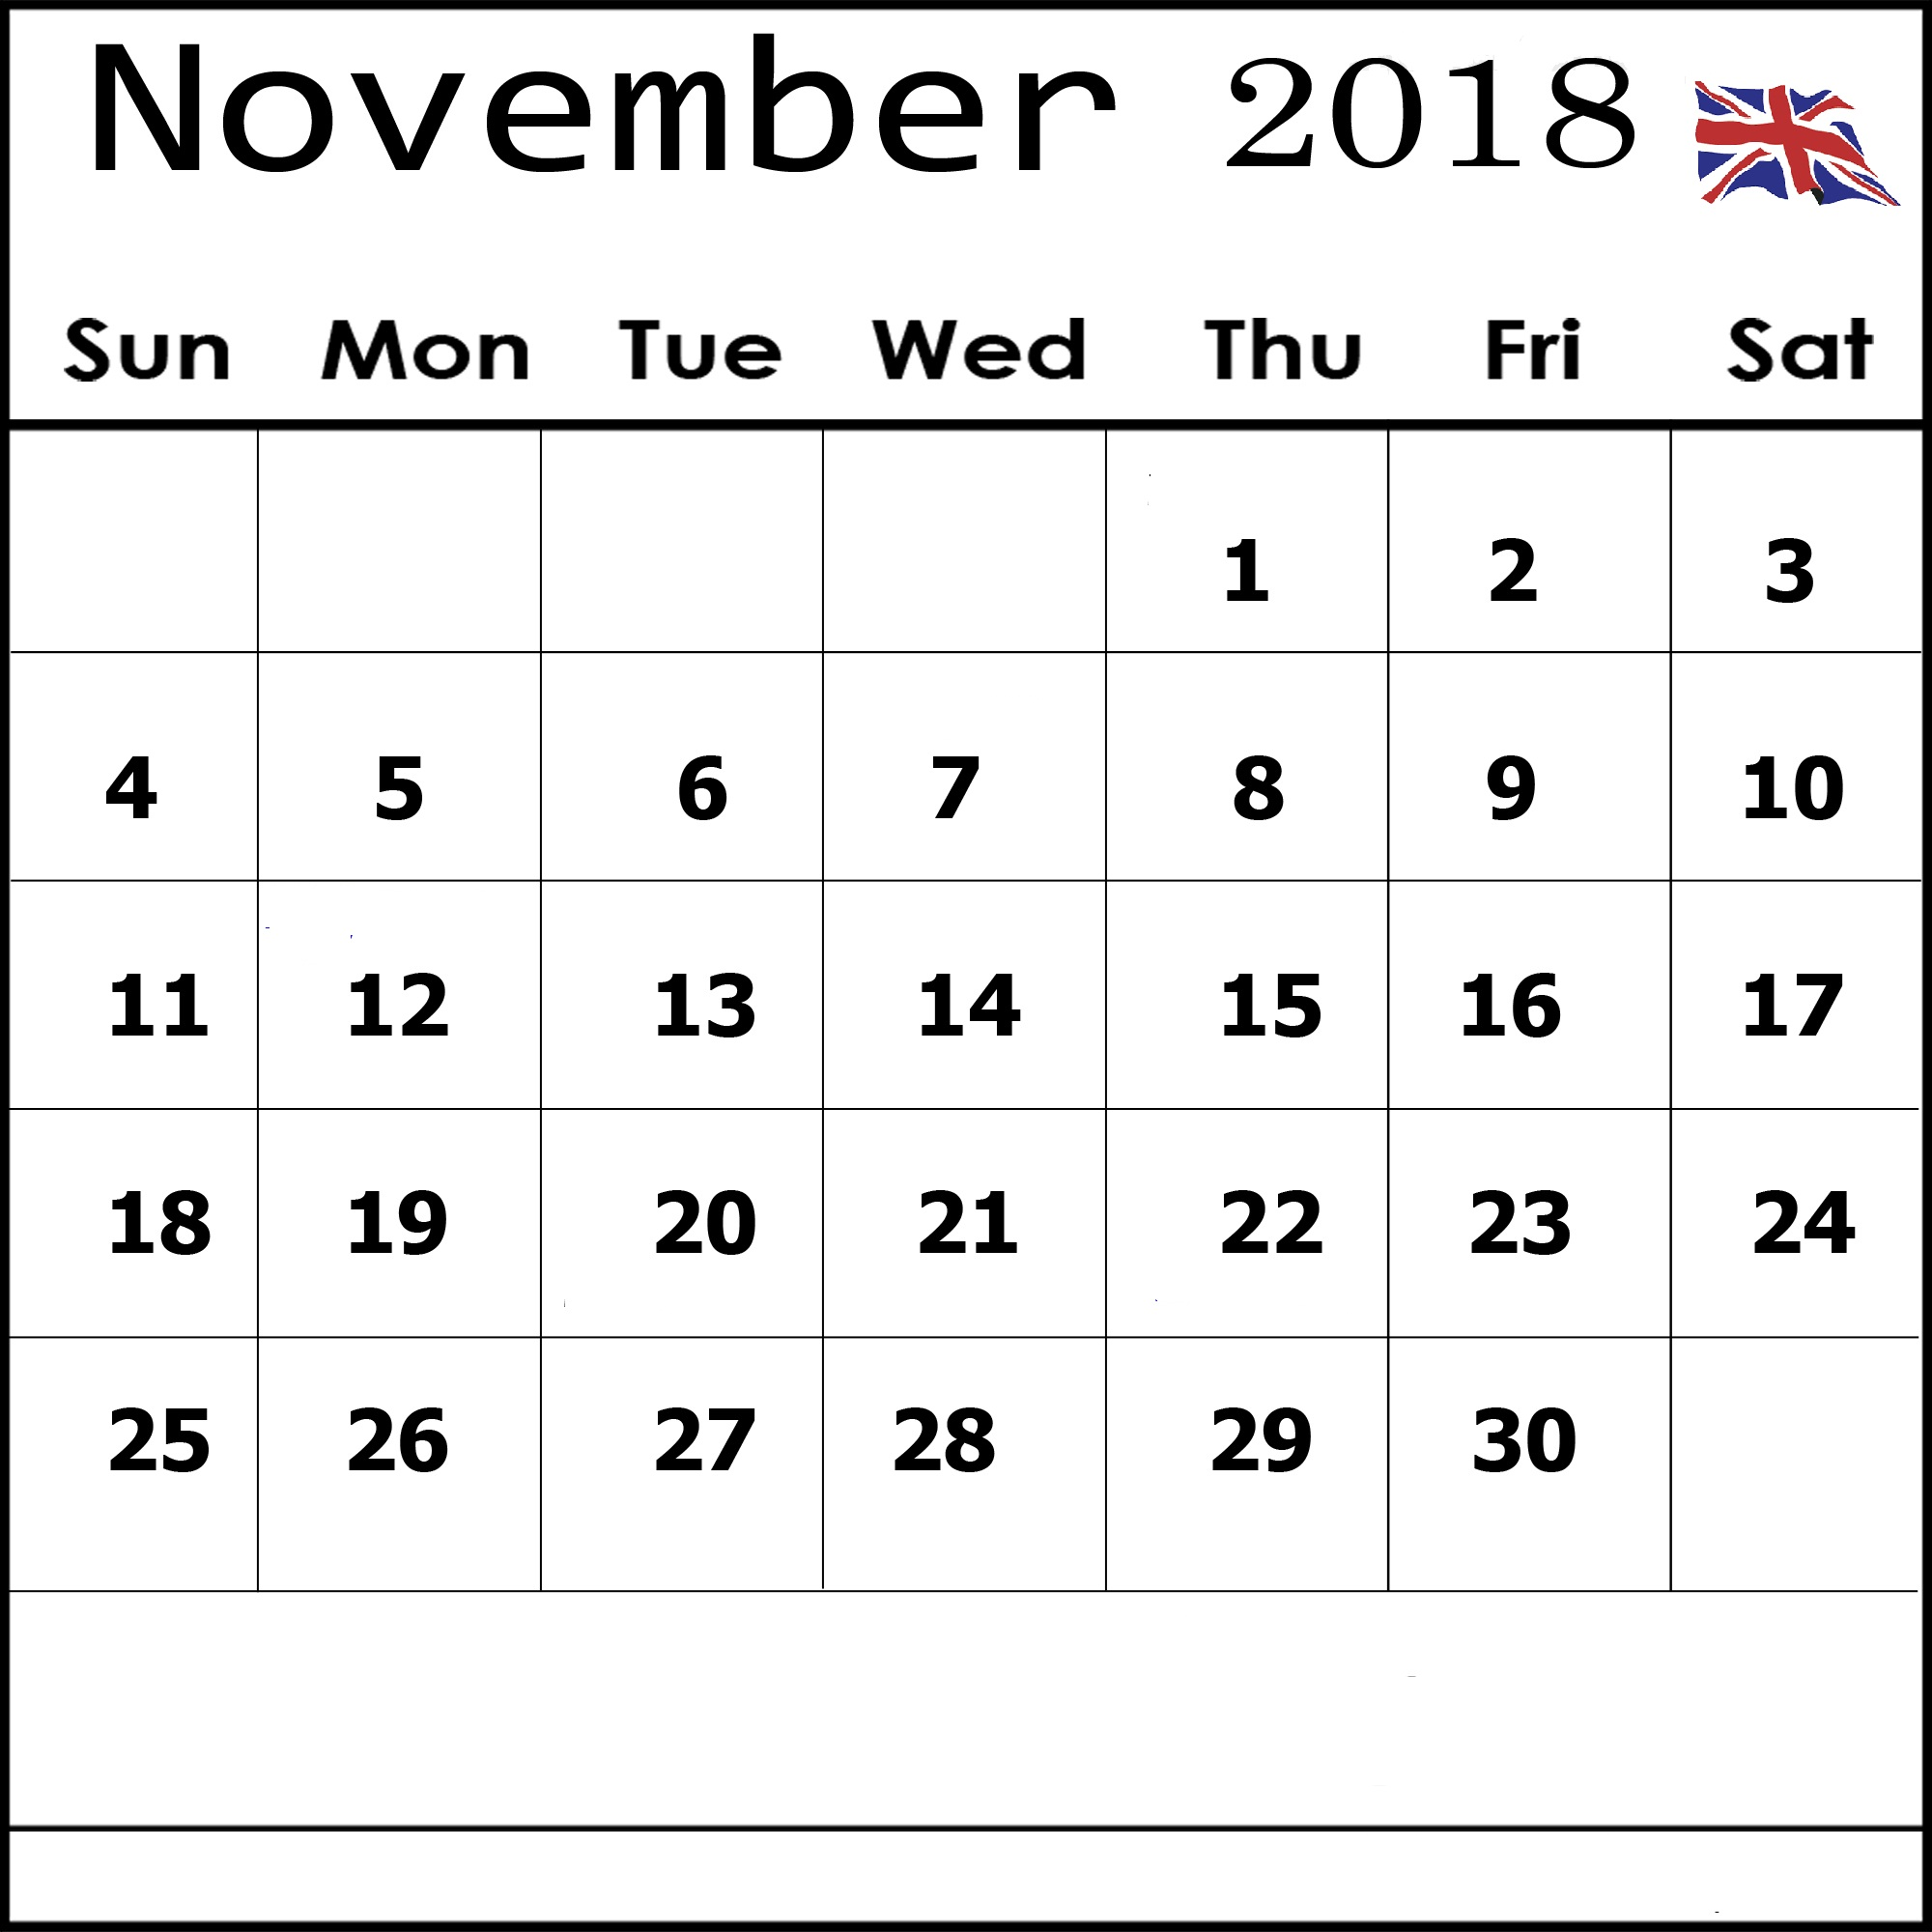 November 2018 Calendar UK National Holidays